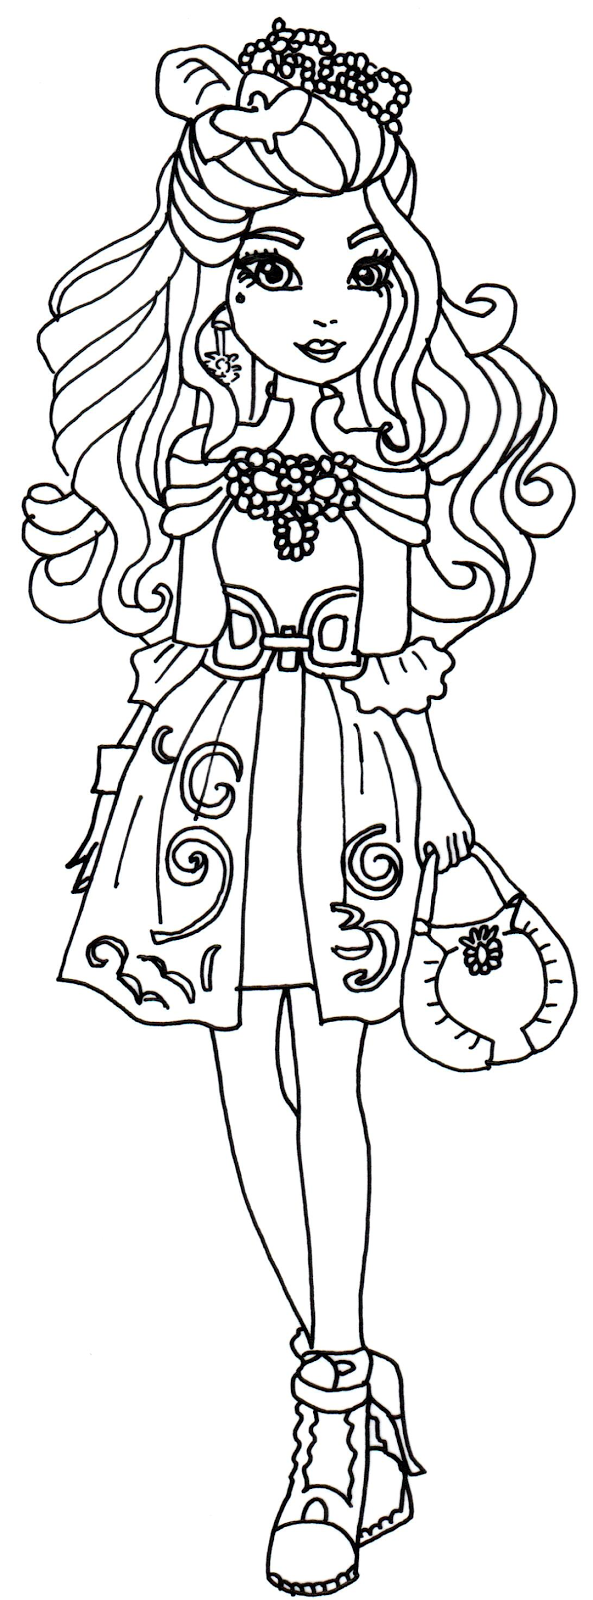 Ever After High Darling Charming Dragon Games Coloring Sheets